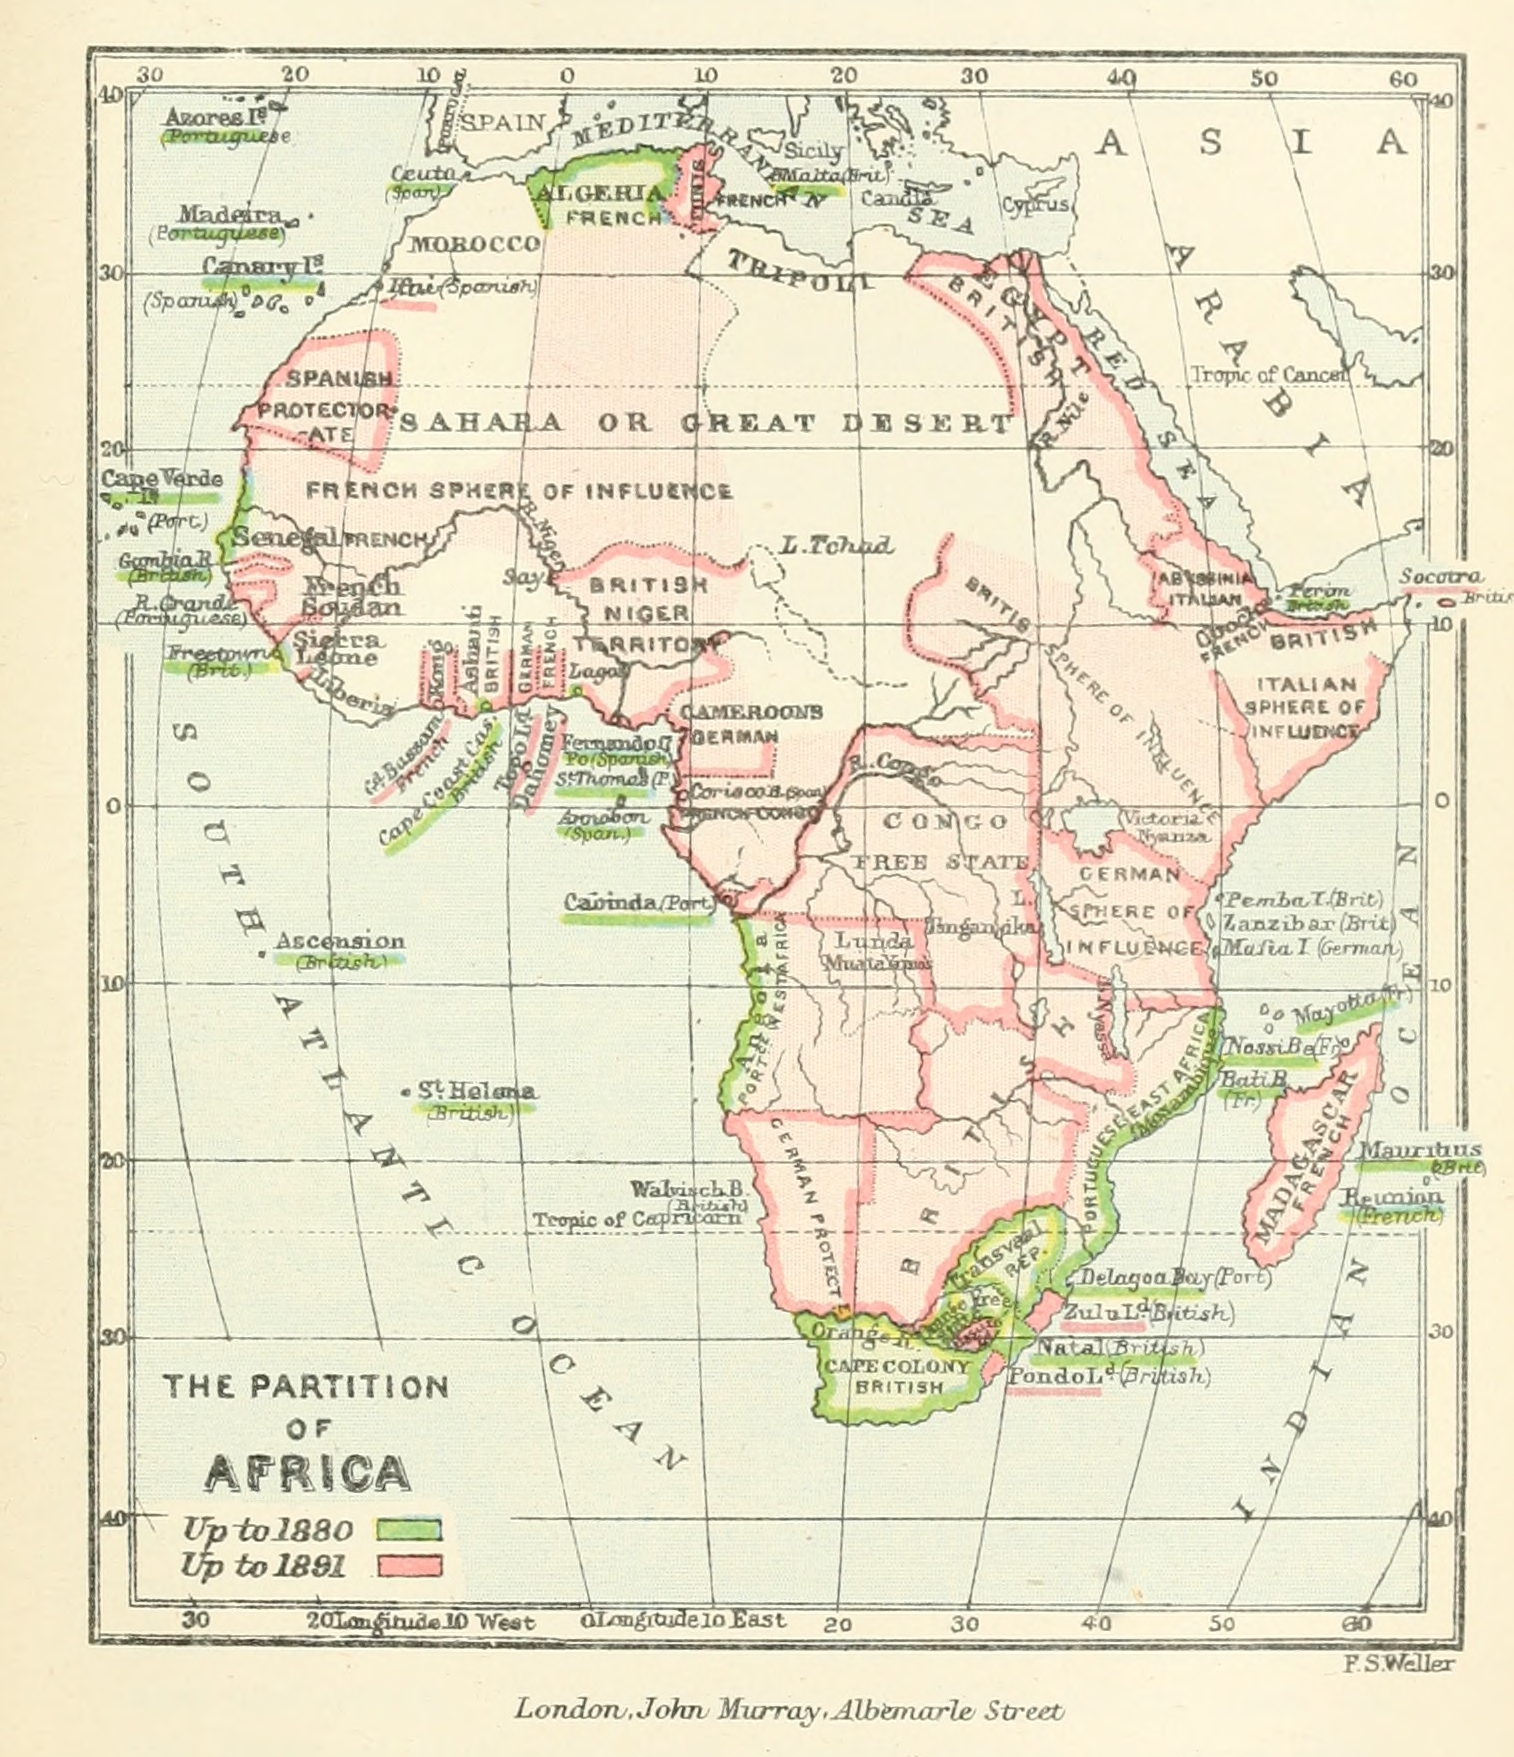 Partition Of Africa Map.File The Partition Of Africa Jpg Wikimedia Commons